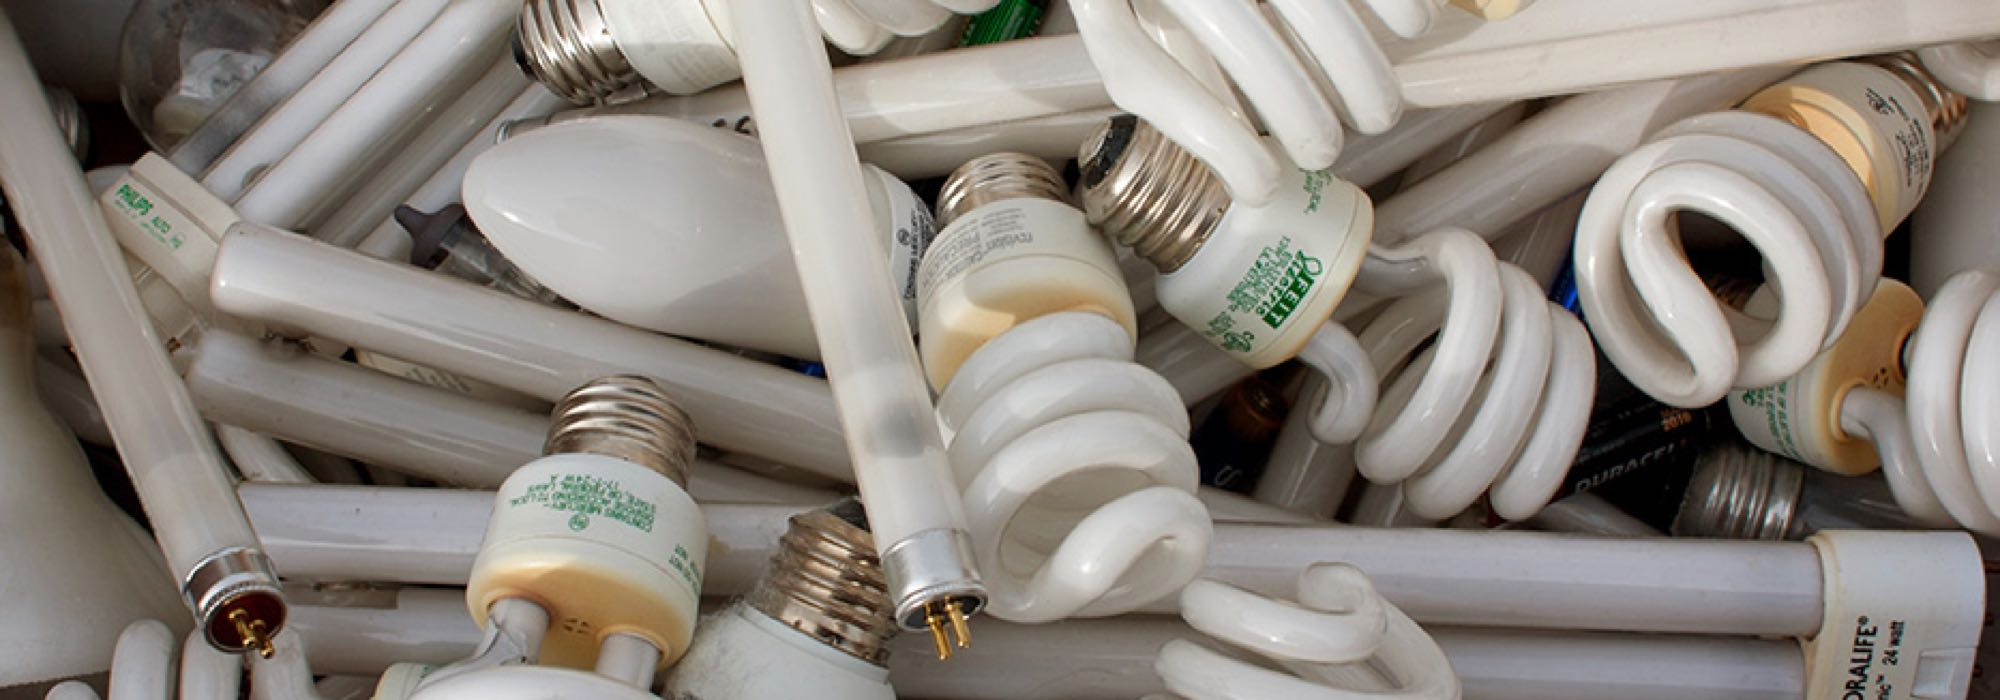 Light Recycling - Product Care Recycling on